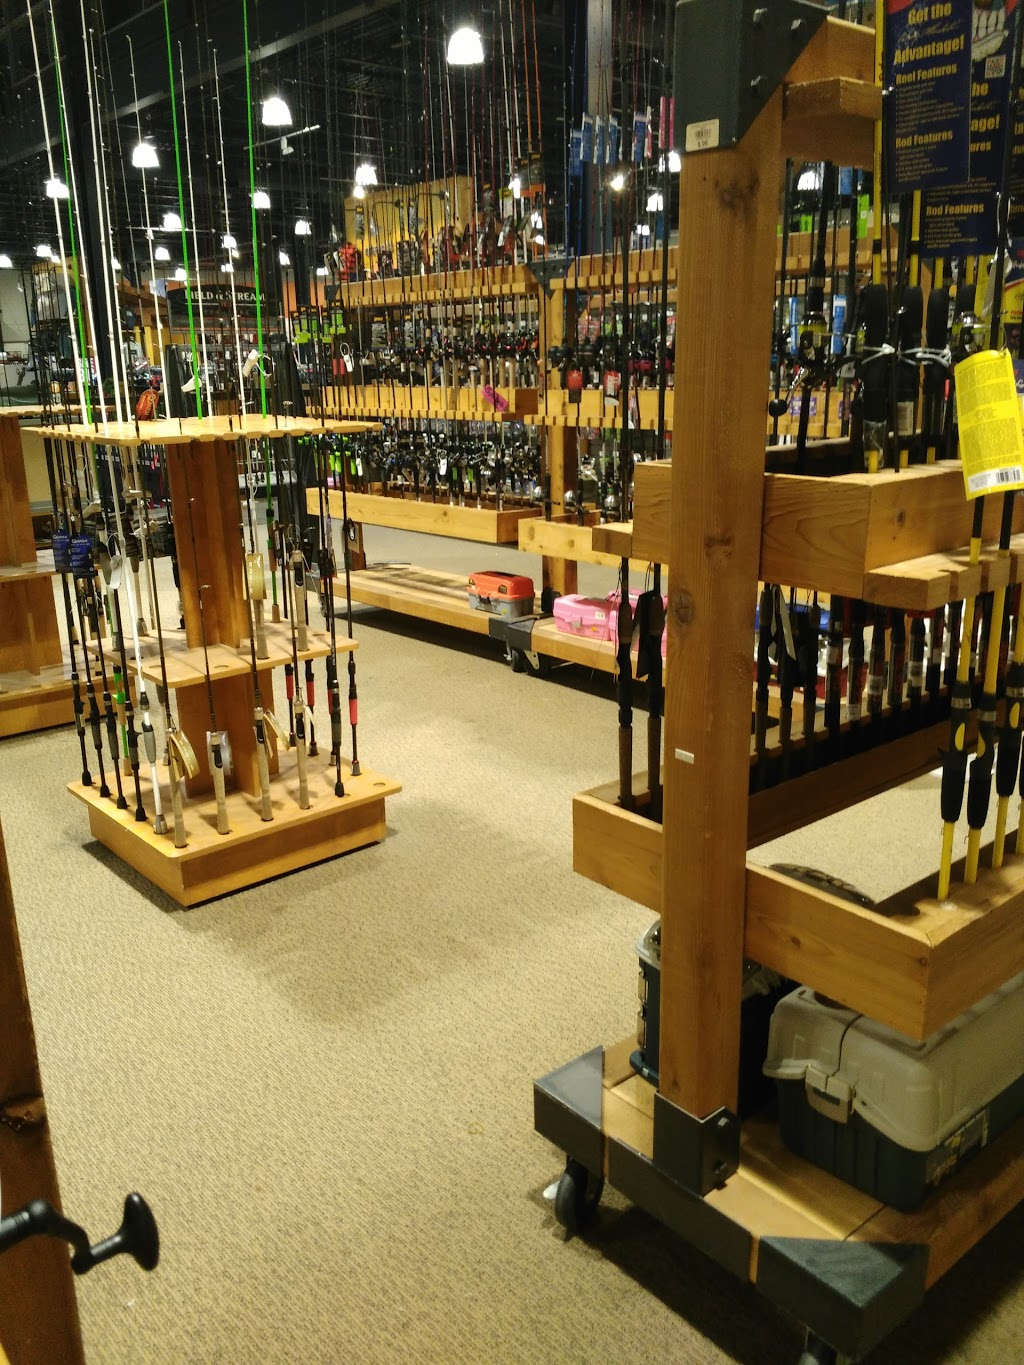 DICKS Sporting Goods - bicycle store  | Photo 10 of 10 | Address: 6020 E 82nd St, Indianapolis, IN 46250, USA | Phone: (317) 576-0300